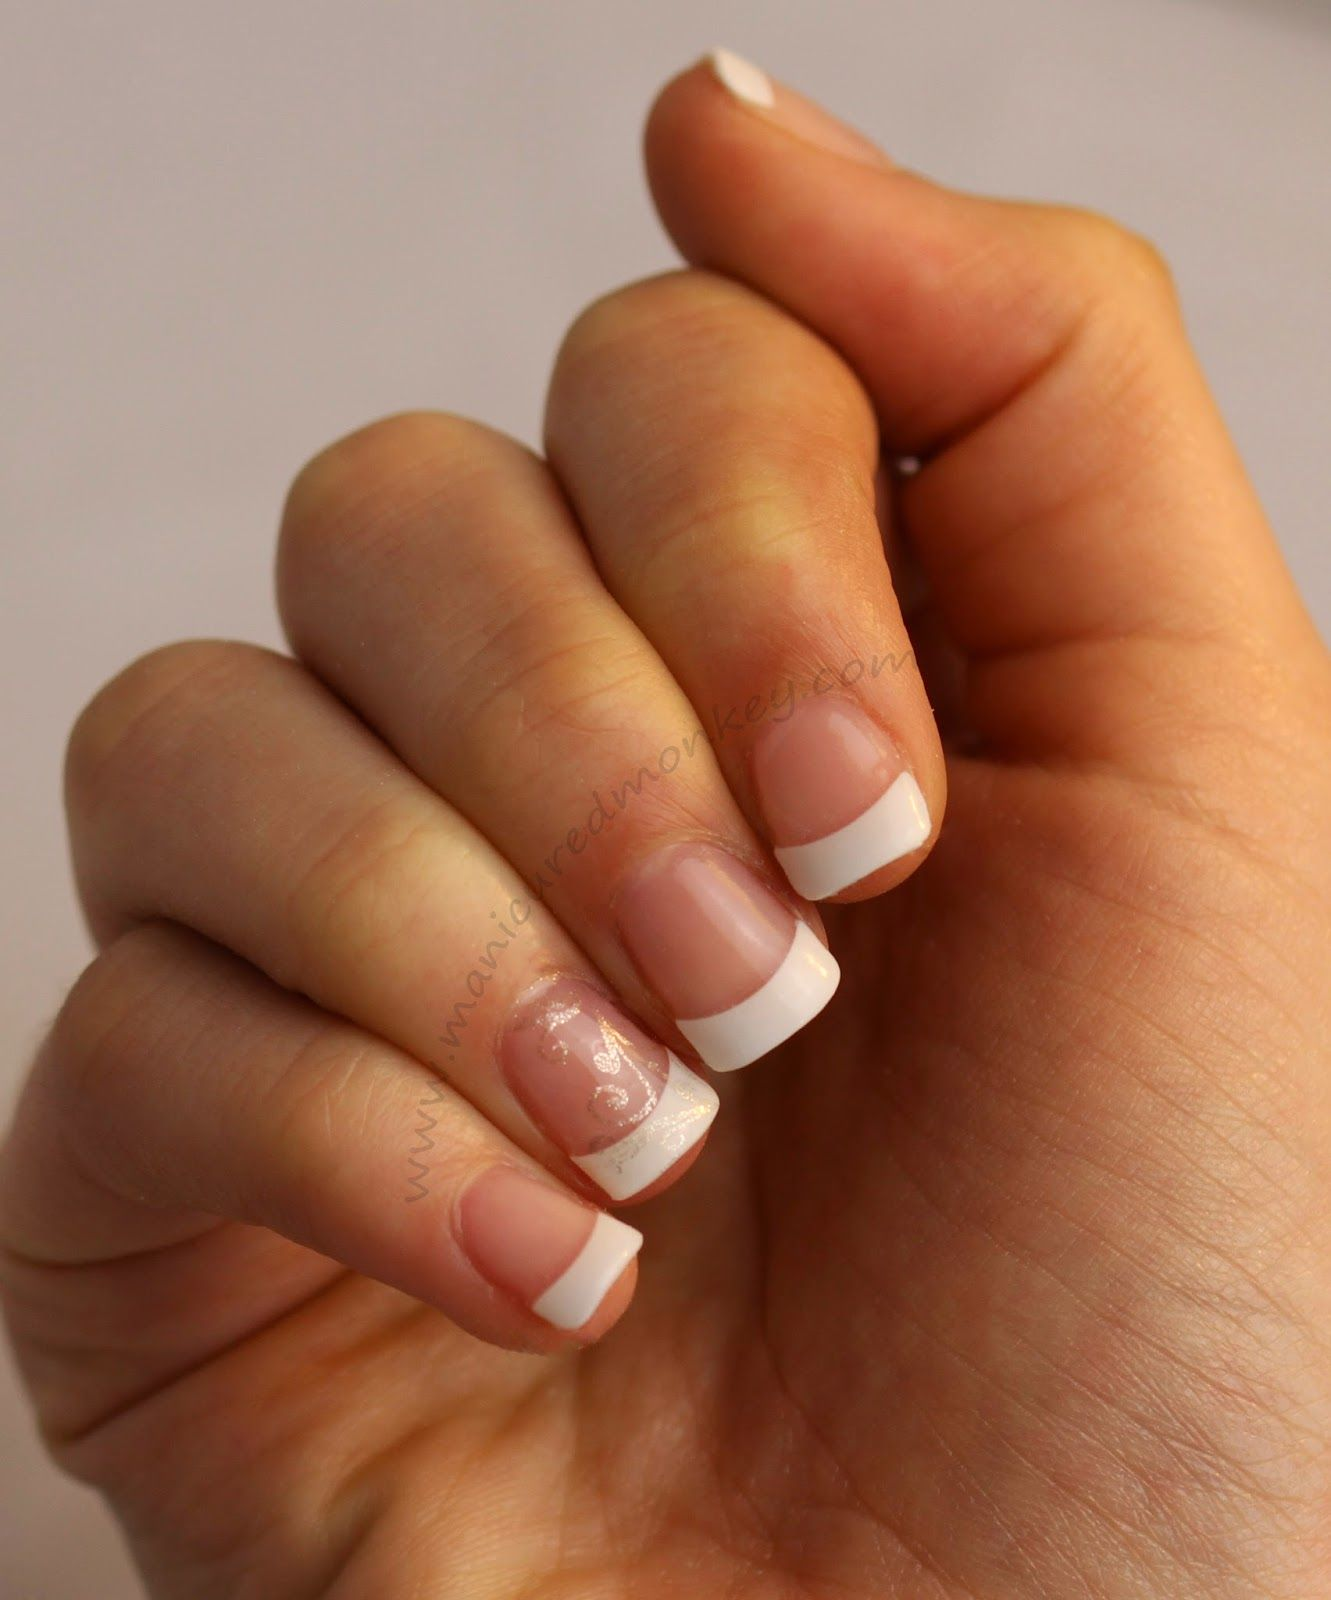 French Tip Acrygel Nails Unas